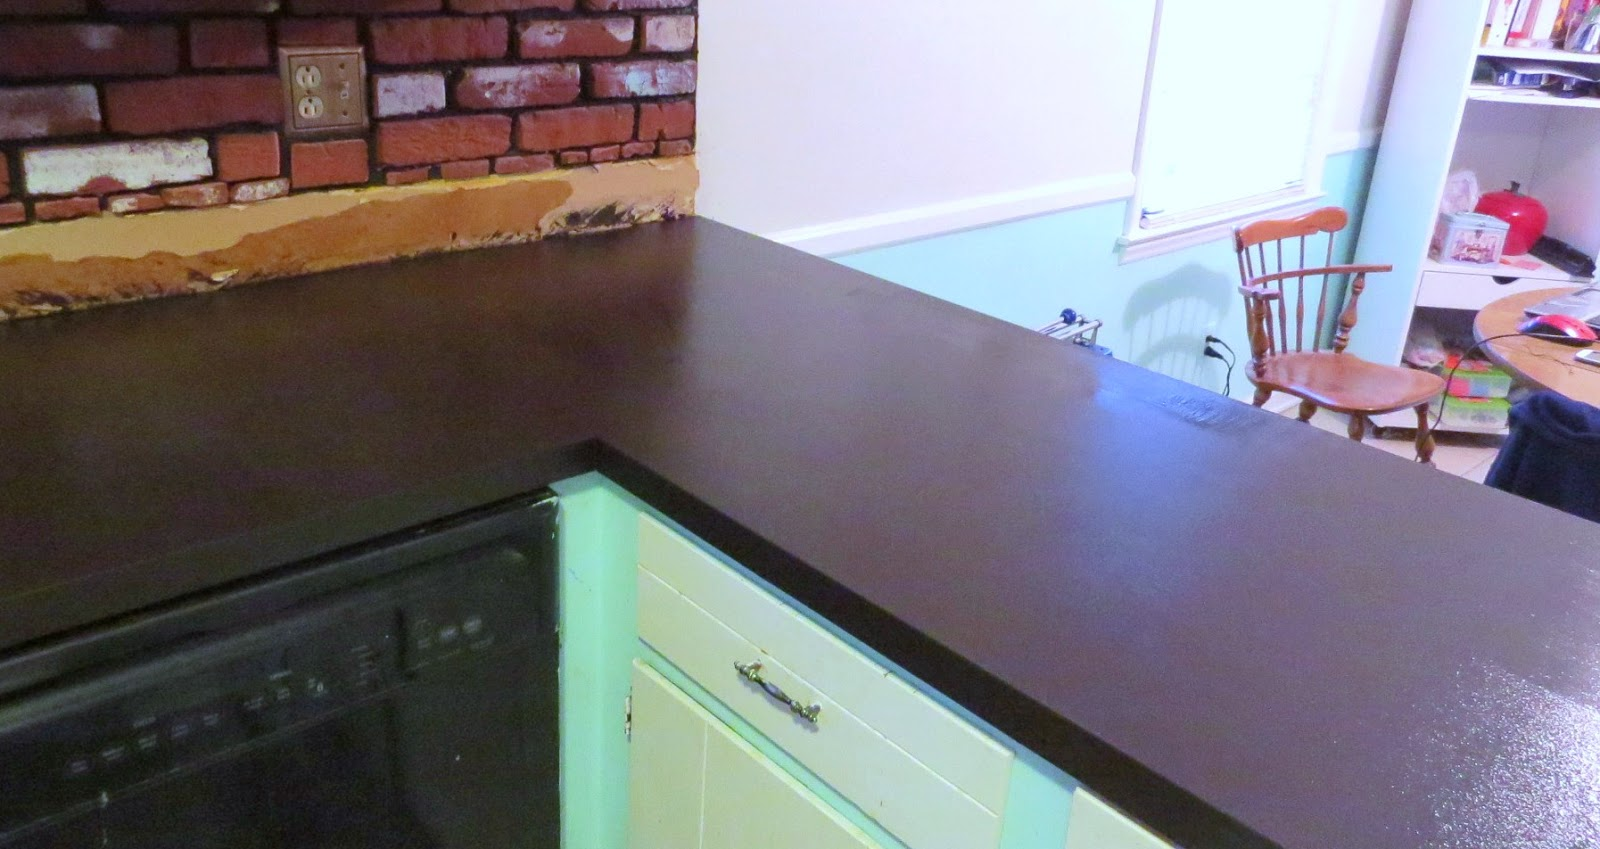 Countertop Epoxy Paint No Title Necessary So This Happened Painted Laminate